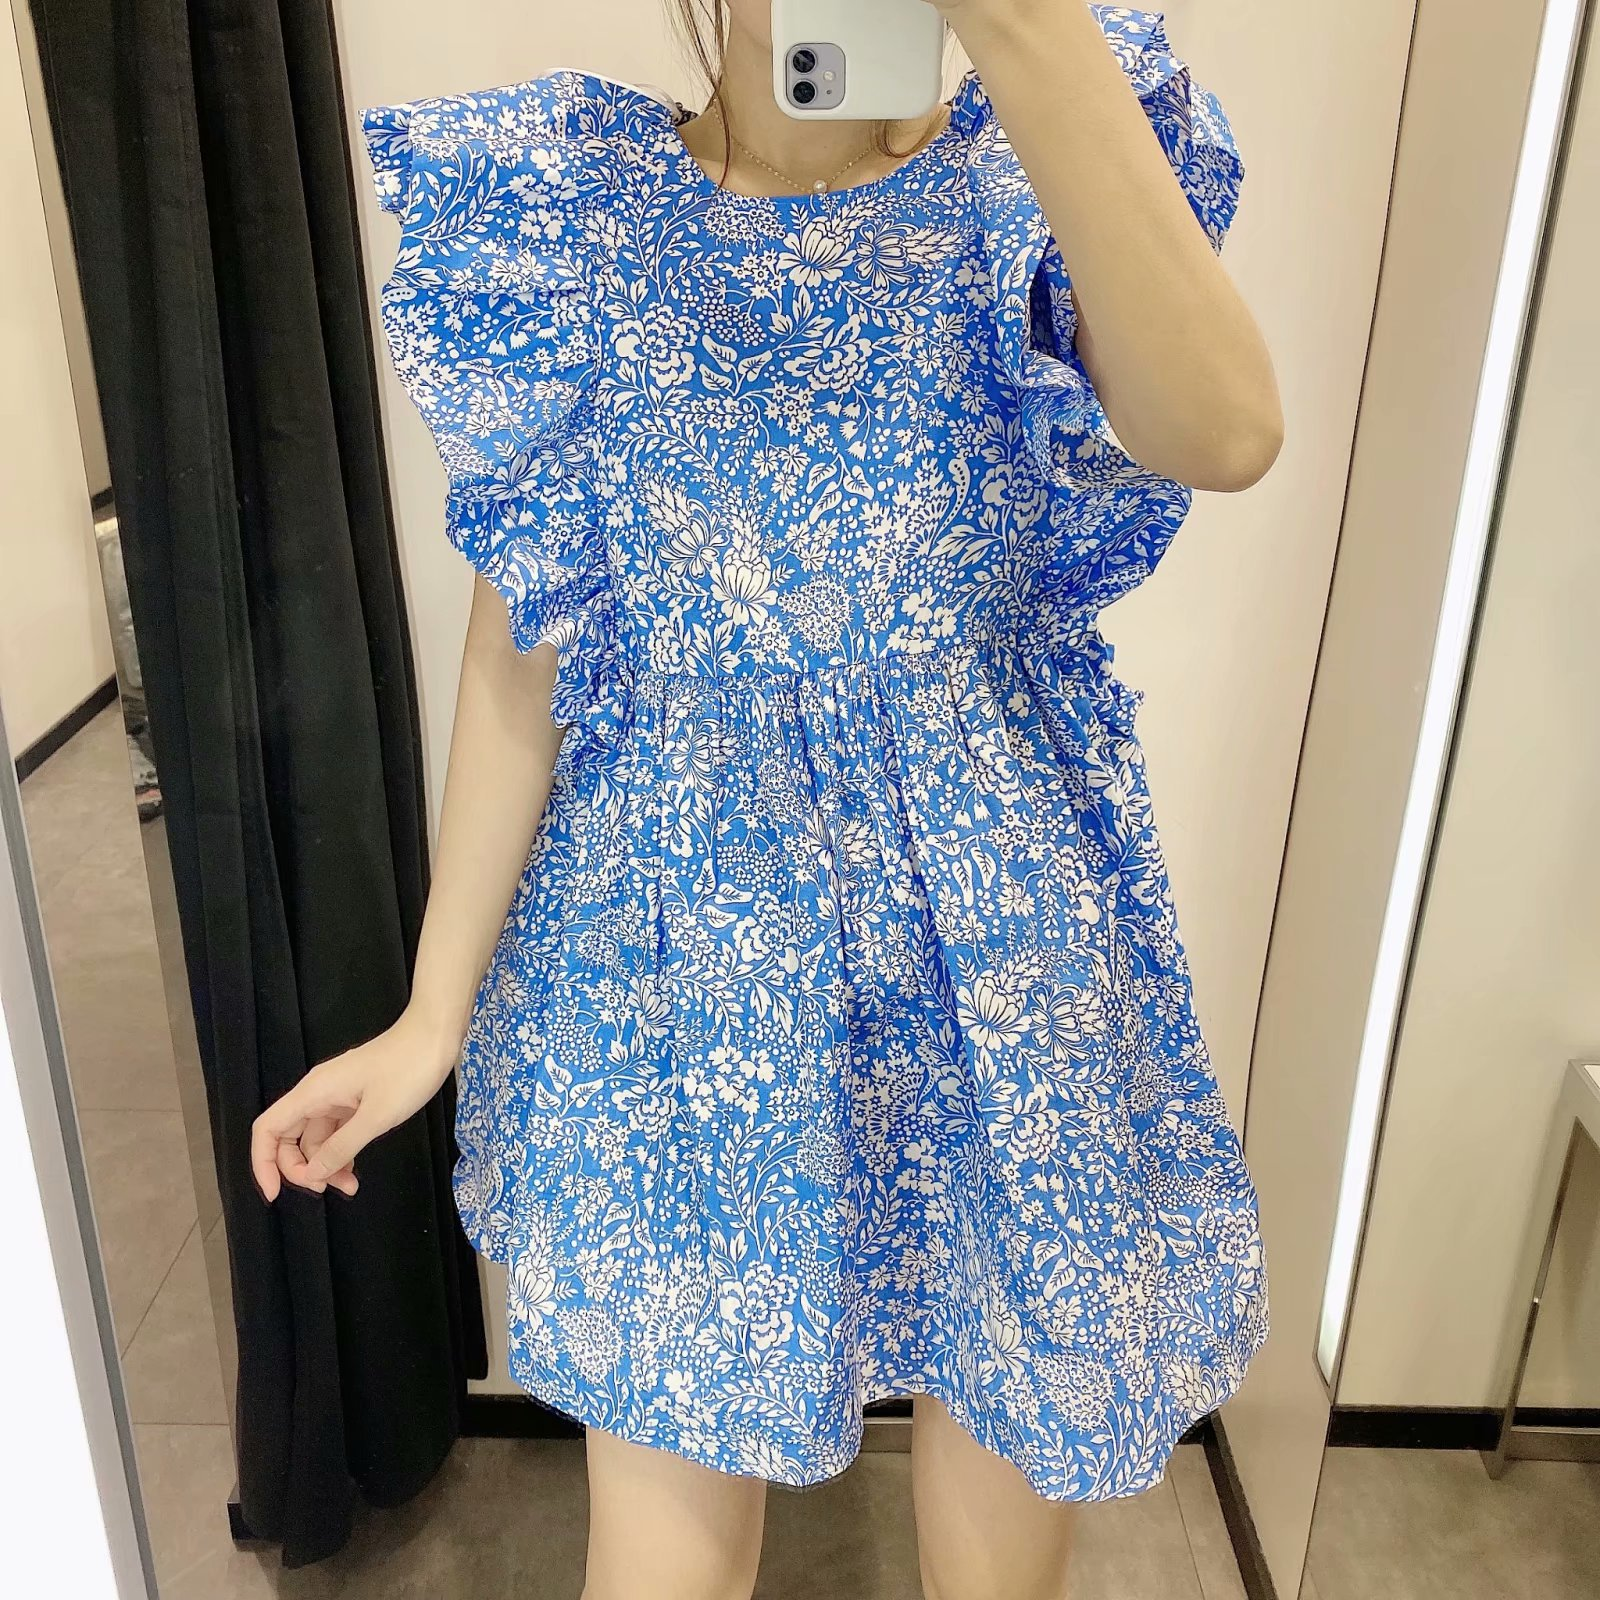 Fashion women's dress wholesale spring printed laminated sleeveless baby shirt dress NHAM200141